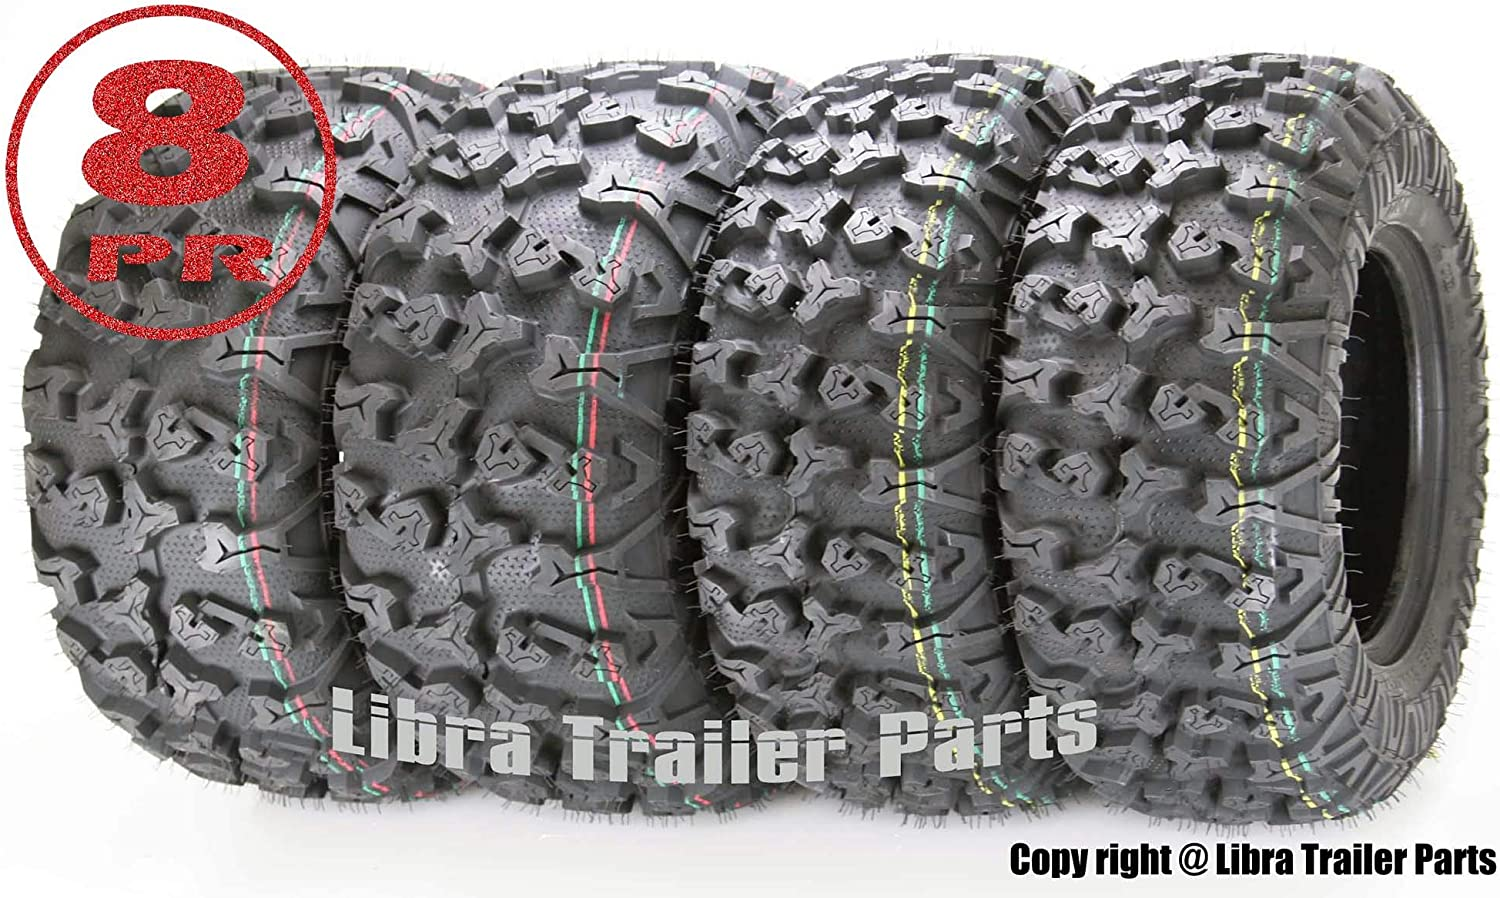 Free Country ATV/UTV Tires 25x8-12 Front and 25x10-12 Rear